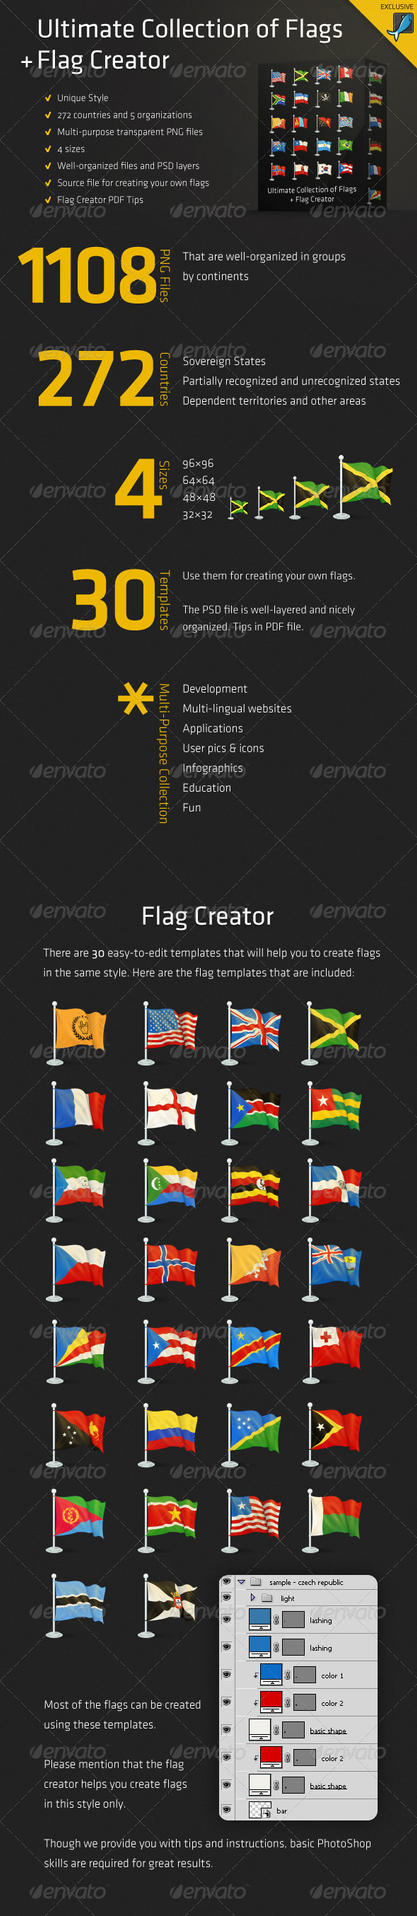 Ultimate Collection of Flags by xximsohappy